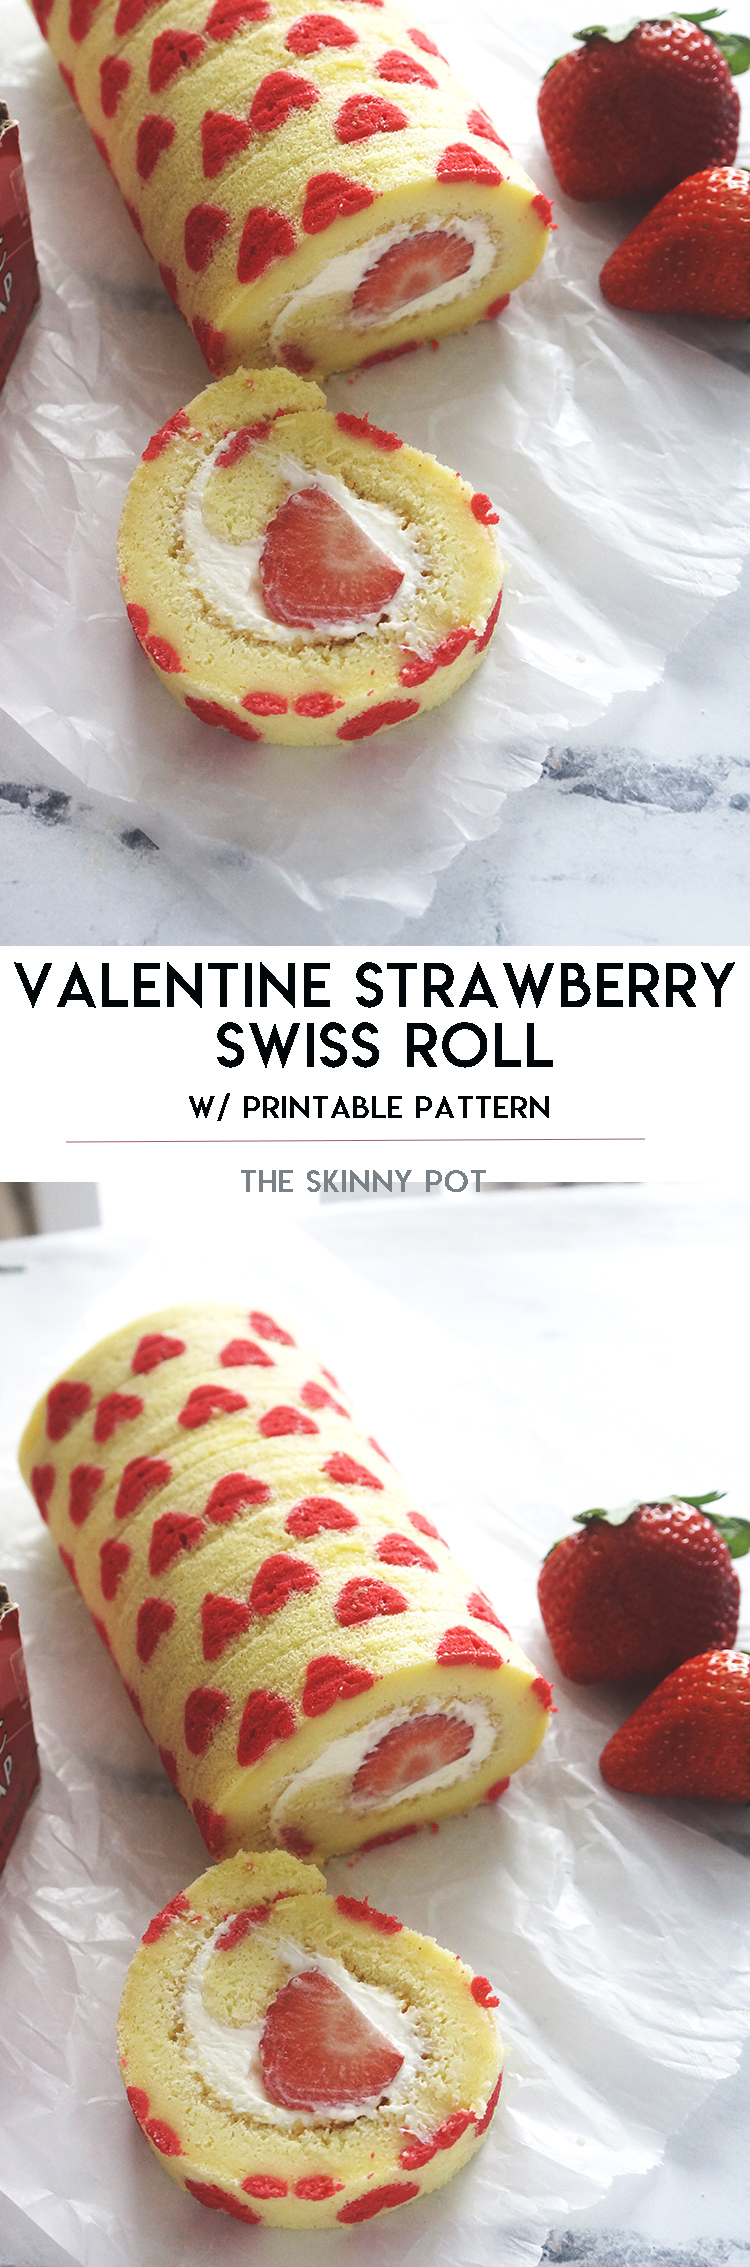 Best Swiss Roll recipe with BONUS printable pattern